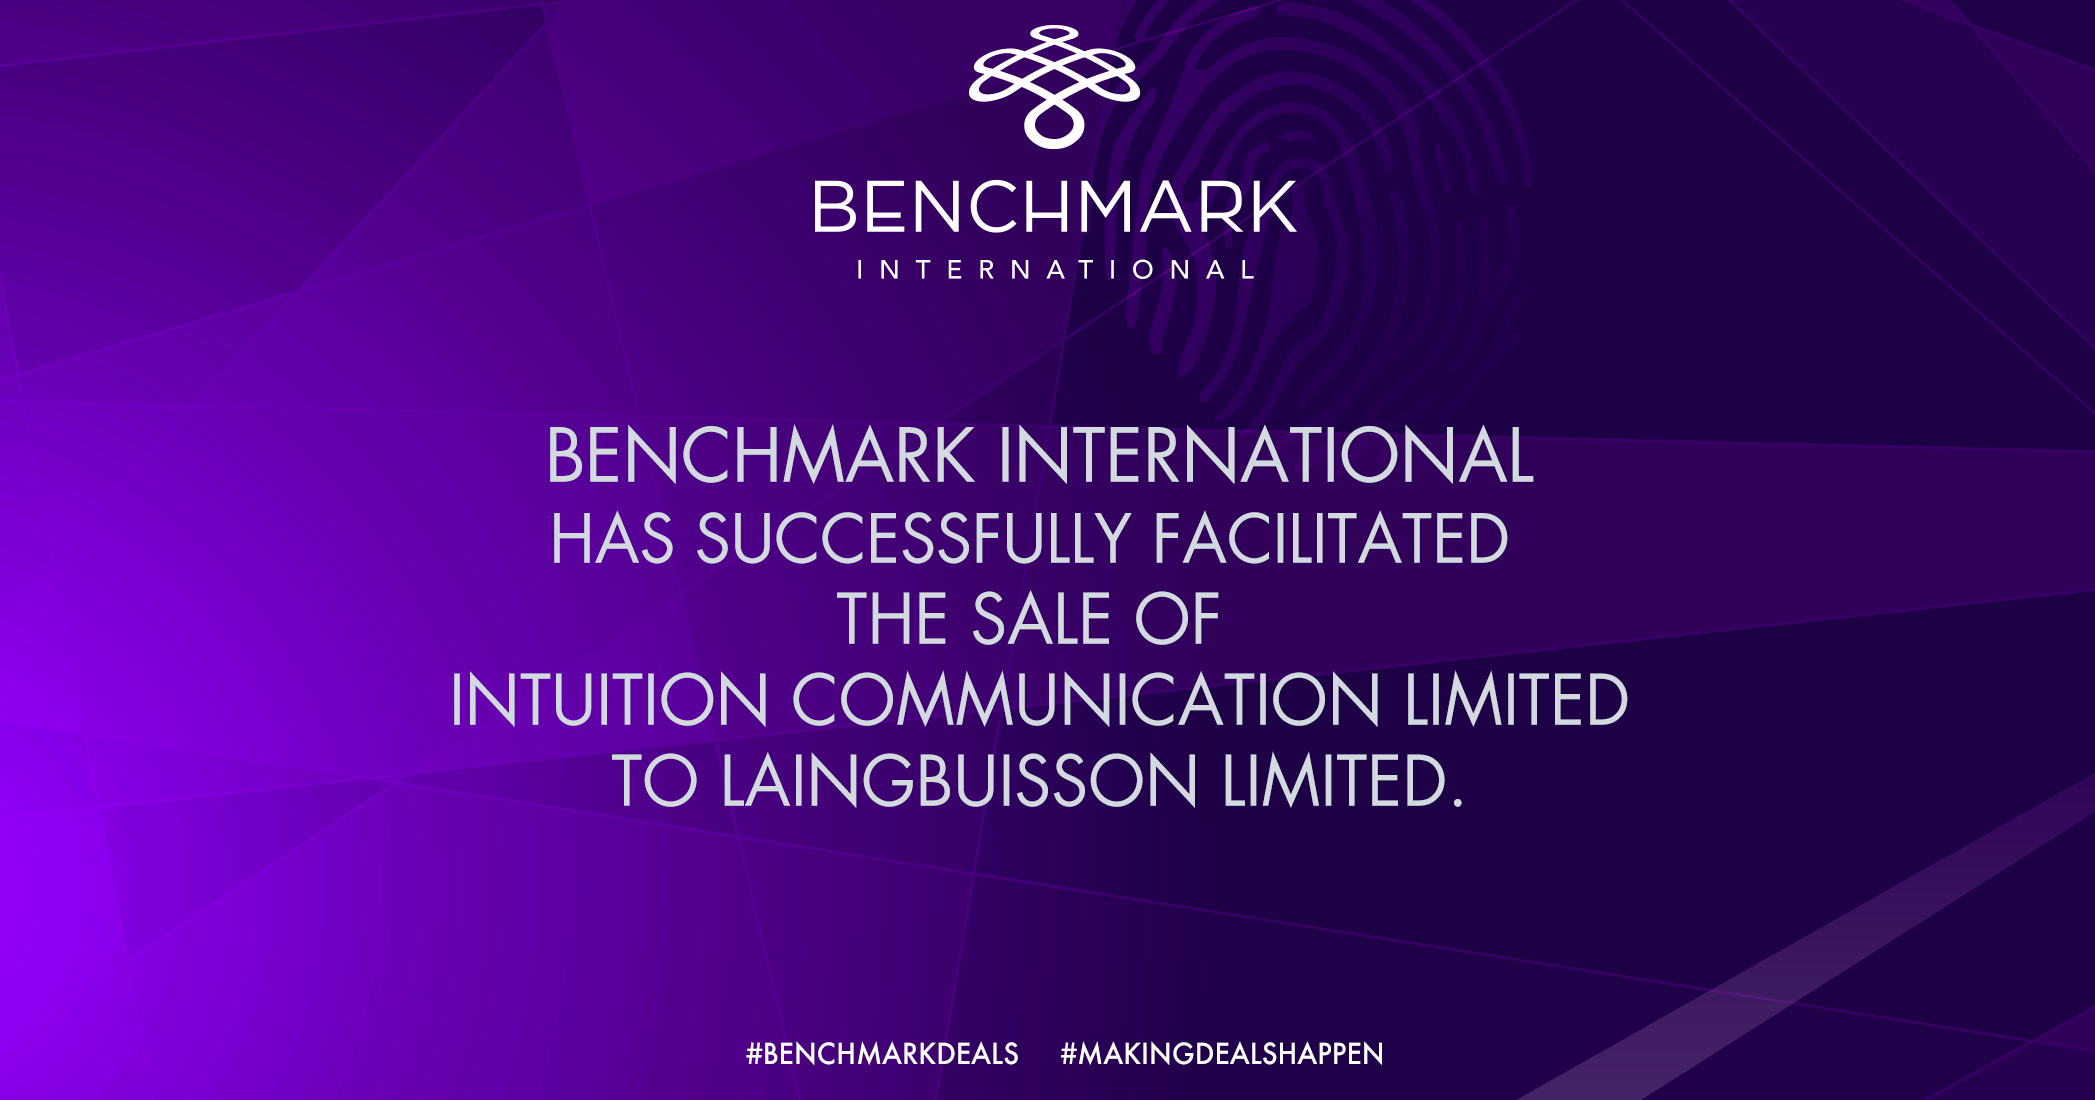 Benchmark International Advises on the Sale of Intuition Communication Limited to LaingBuisson Limited